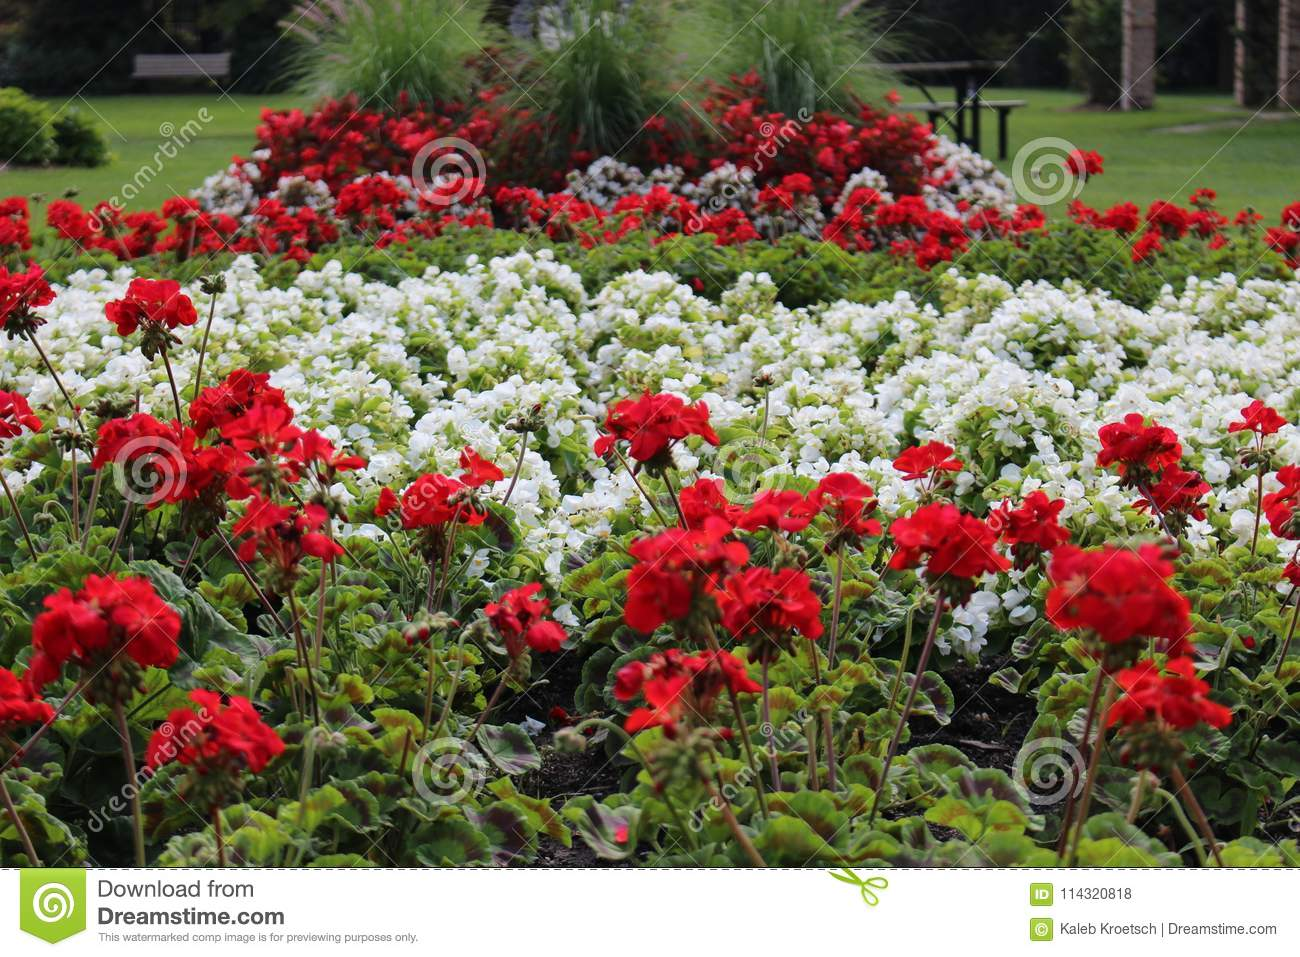 Red and white flowers depicting the national flag of canada download red and white flowers depicting the national flag of canada specially created to celebrate the mightylinksfo